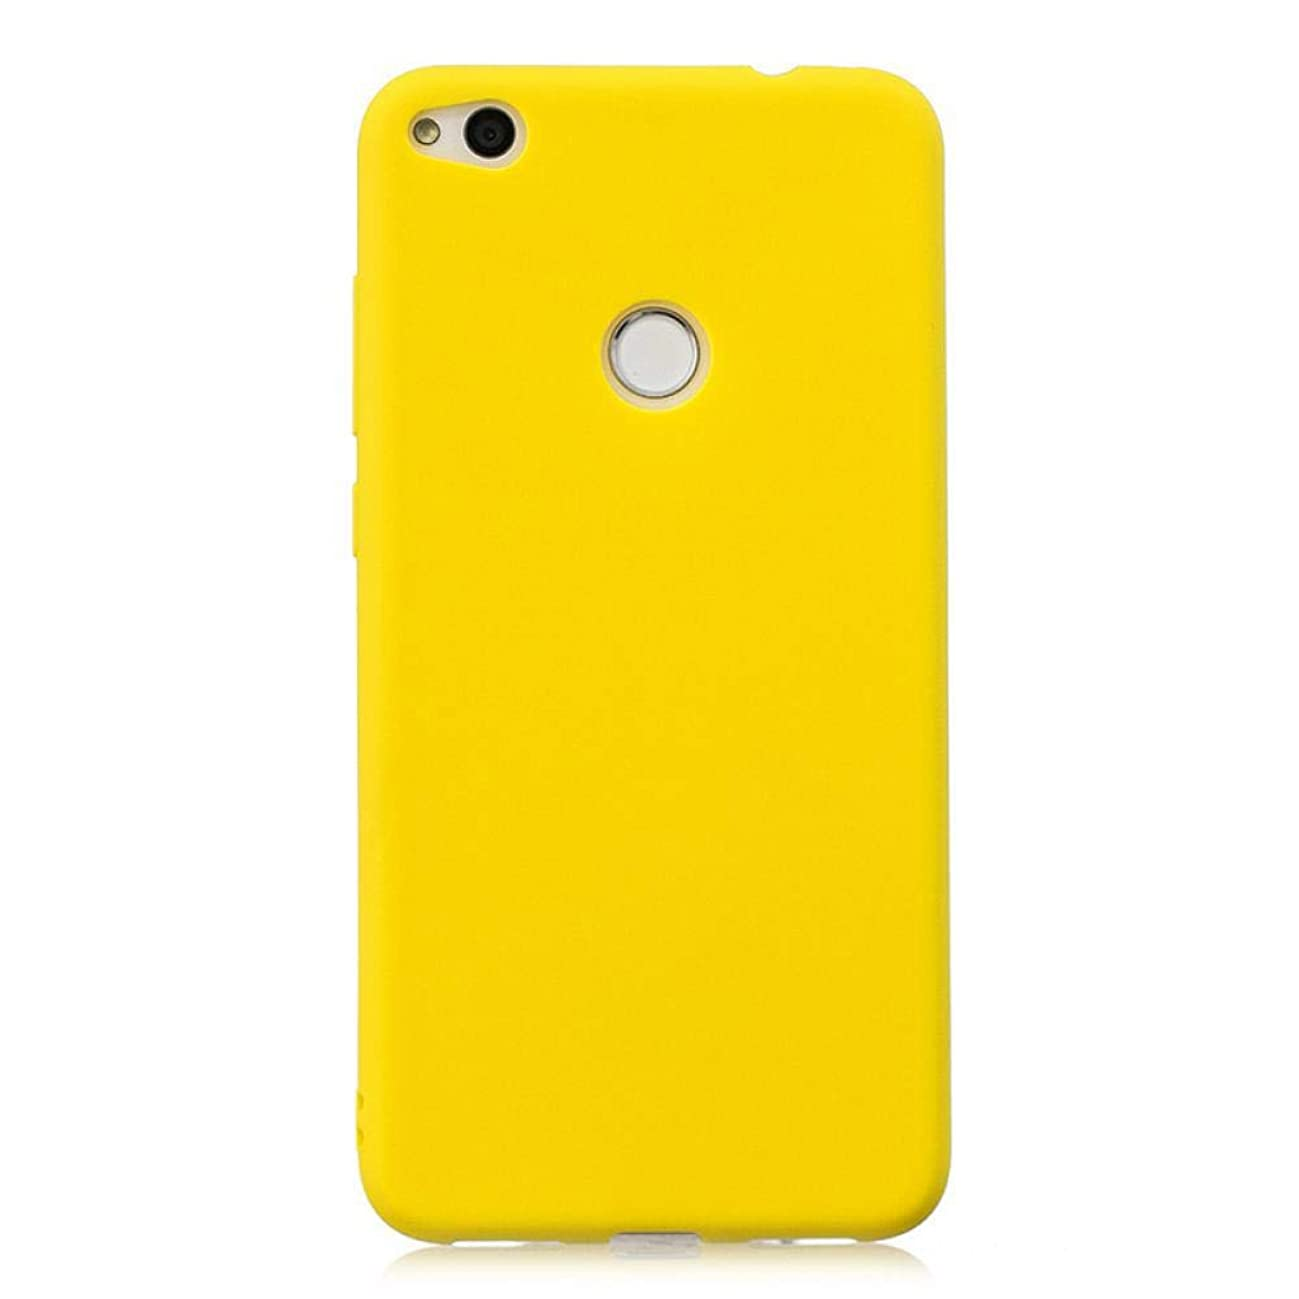 Clauheq Case for Huawei P8 P9 P10 P20 Pro P9Lite GR3 2017 Honor 9 Lite Mate 10 P Smart Y9 2018 Soft Silicon Cell Phone Back Cover Yellow P20 Lite